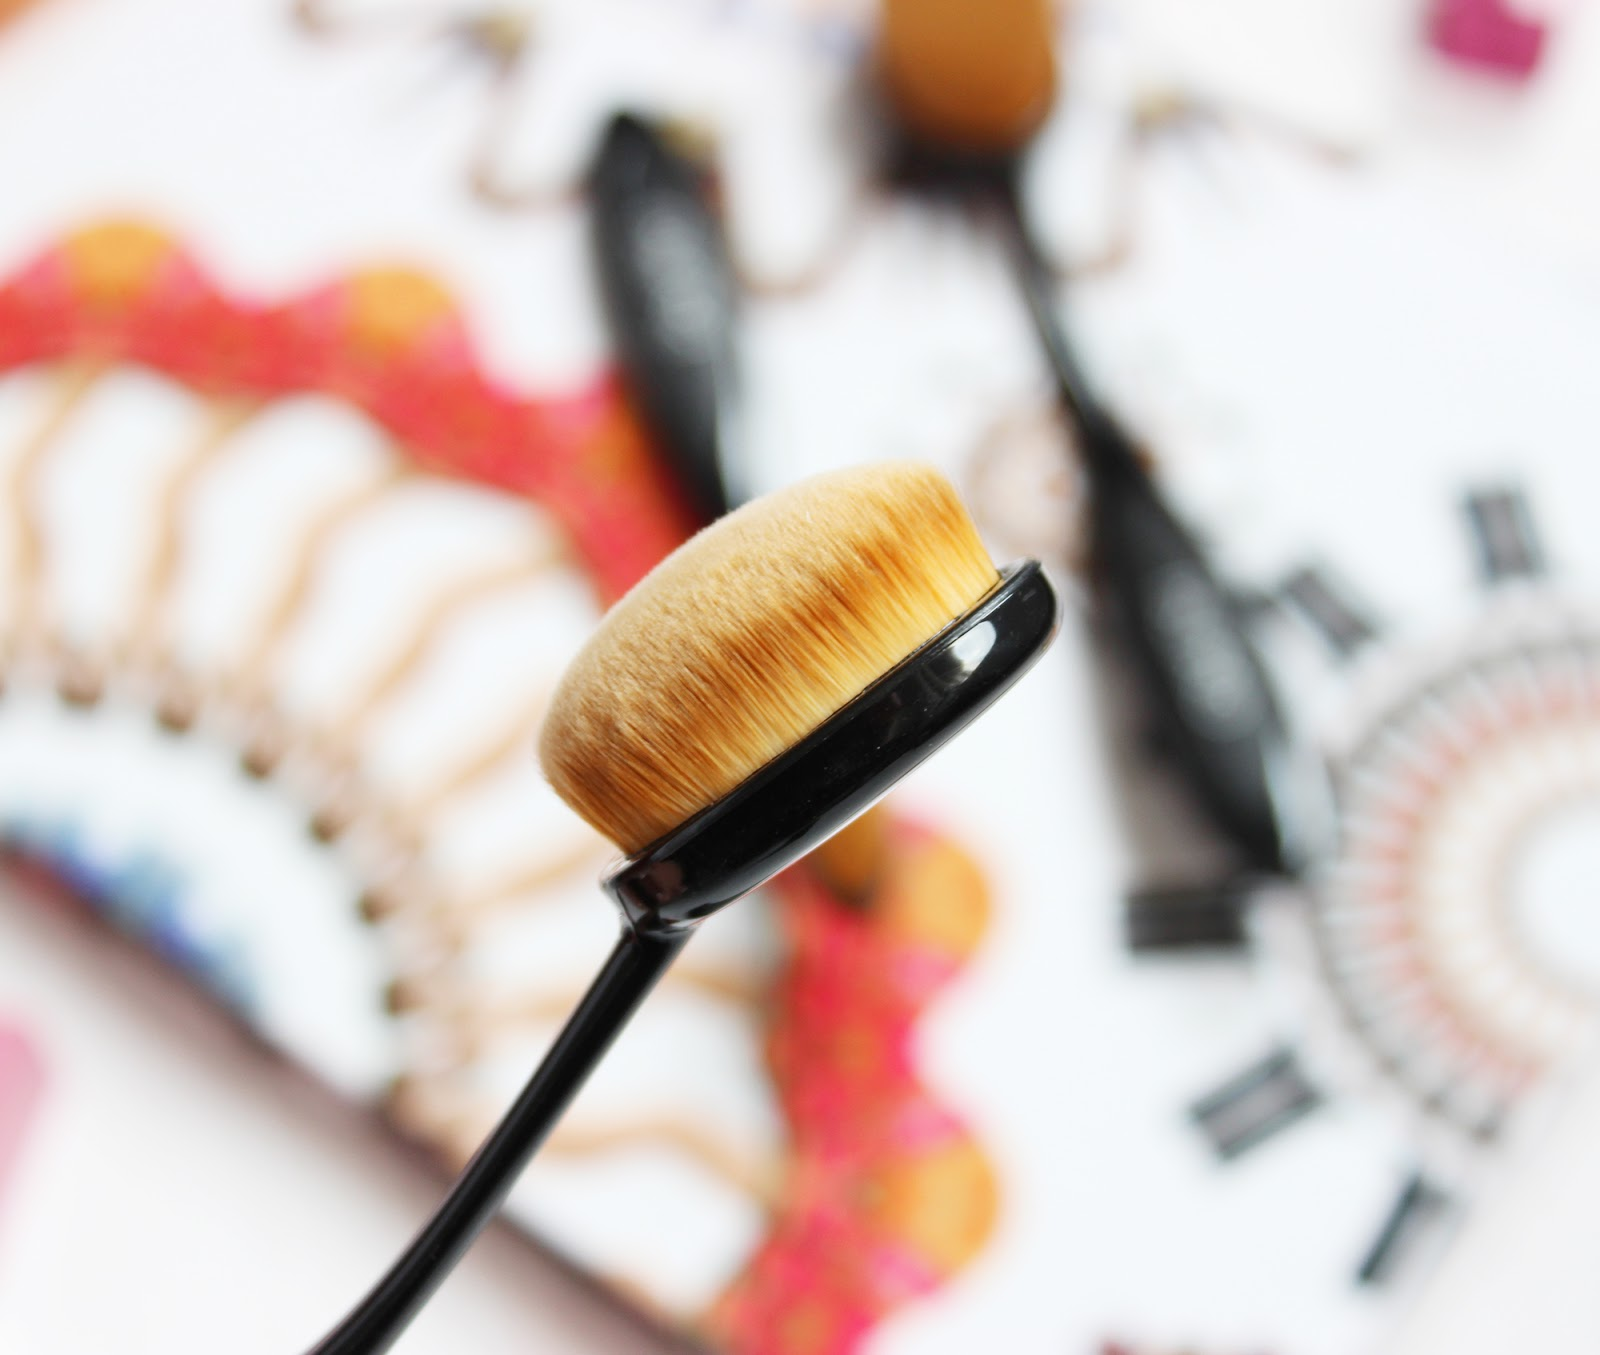 Primark Oval blending brushes Artis Dupe - review